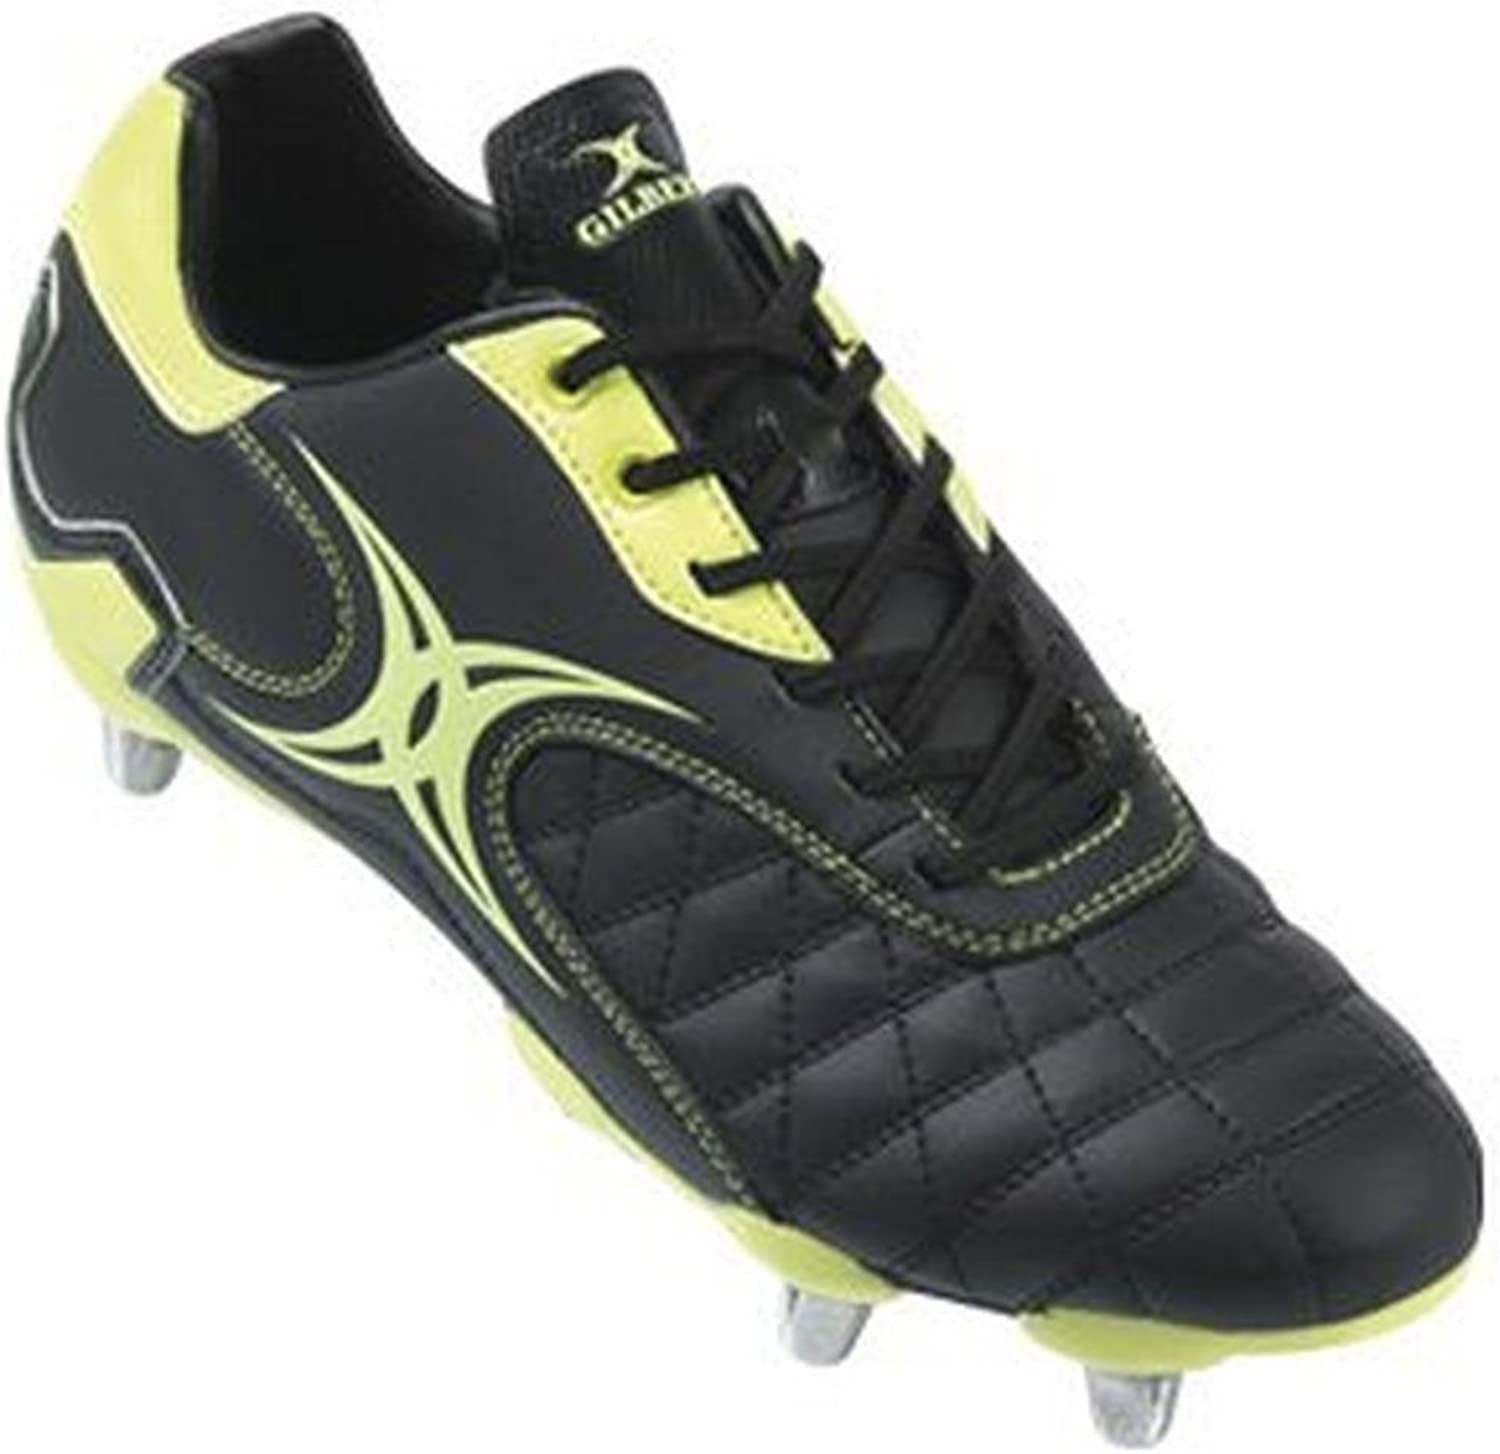 Gilbert Sidestep Revolution SG Rugby Boots